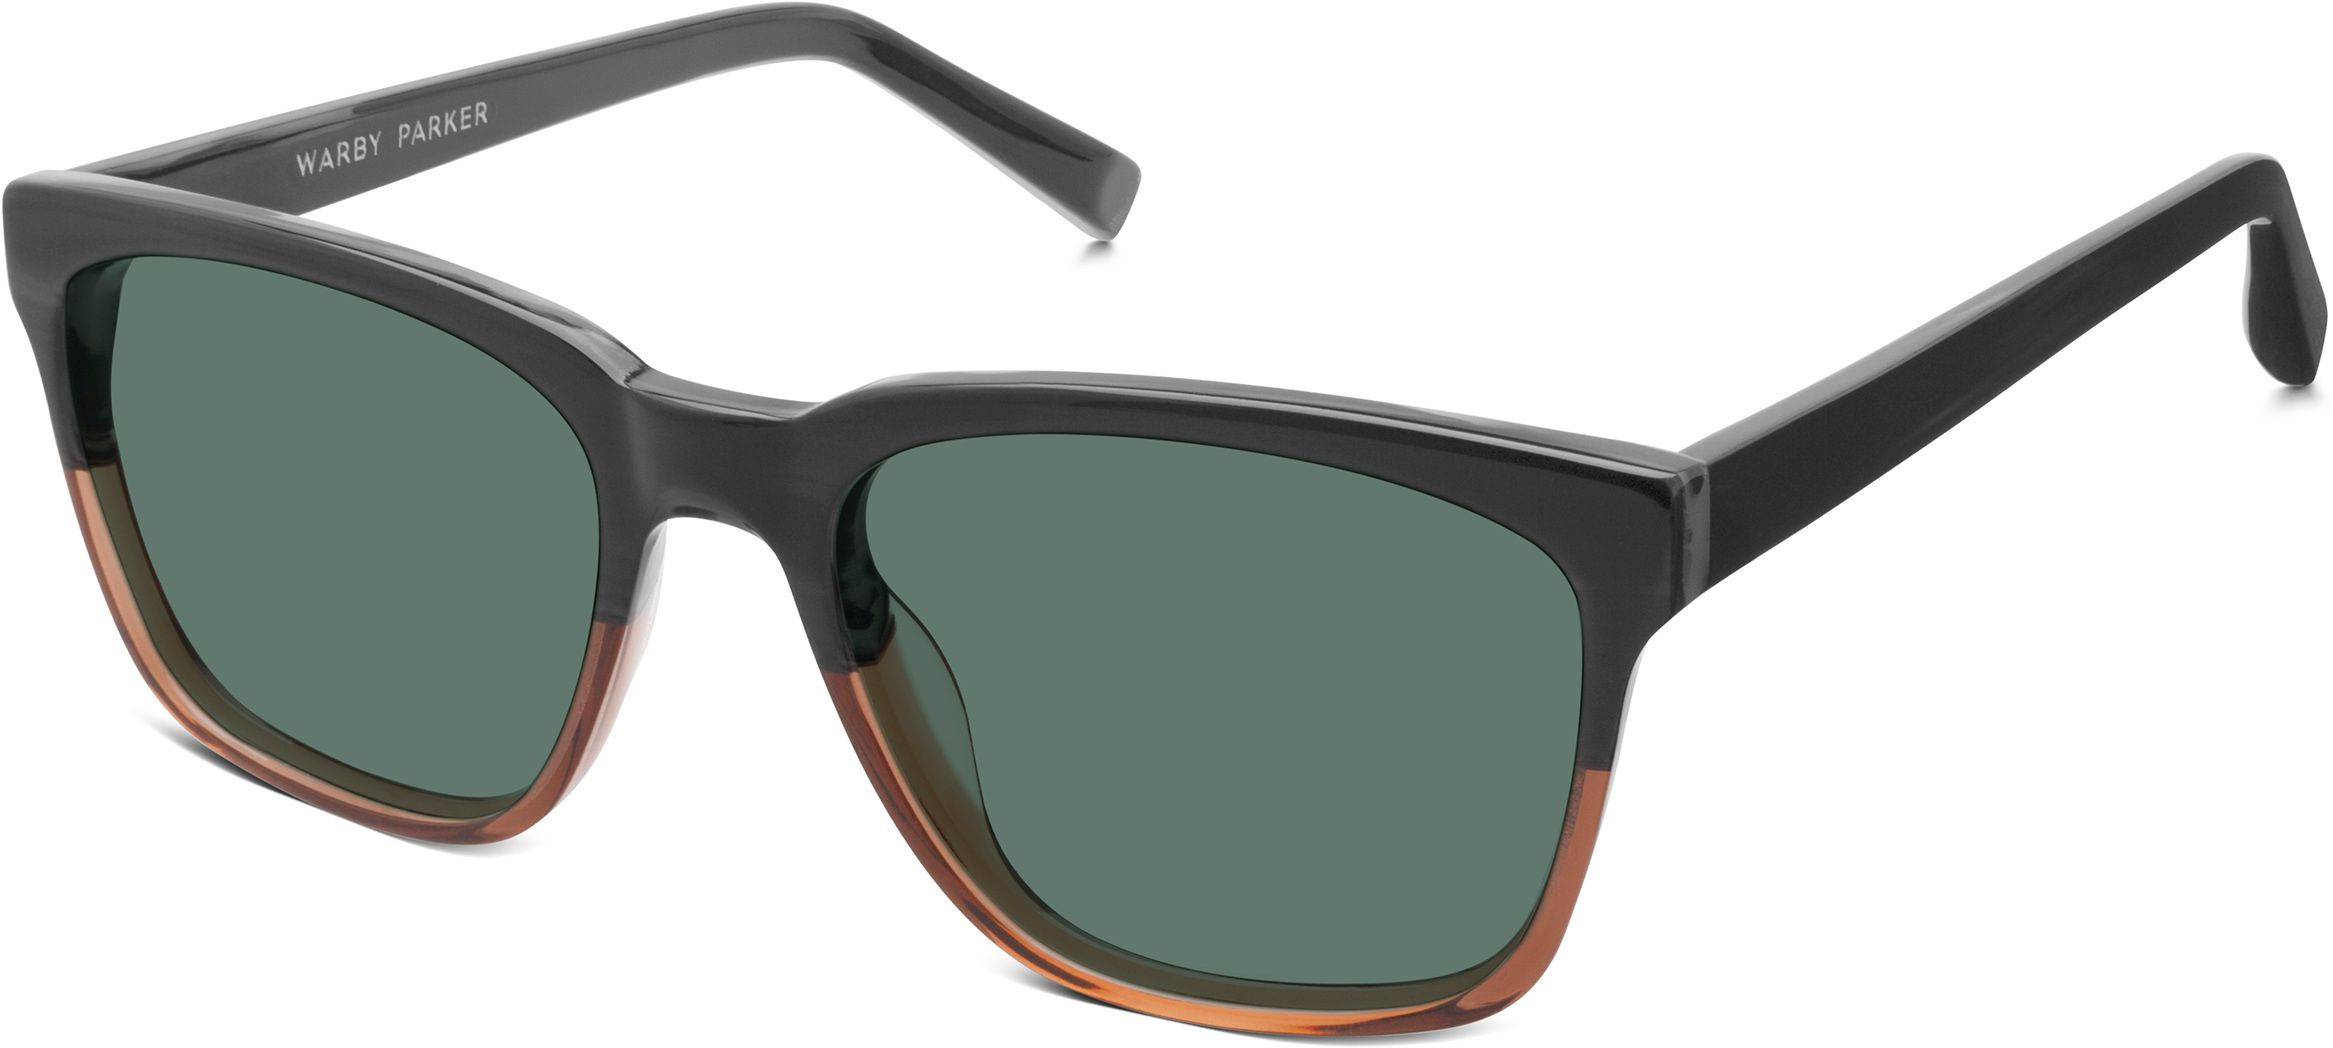 eb1470de82 Barkley Sunglasses in Antique Shale Fade with Green Grey lenses for Men